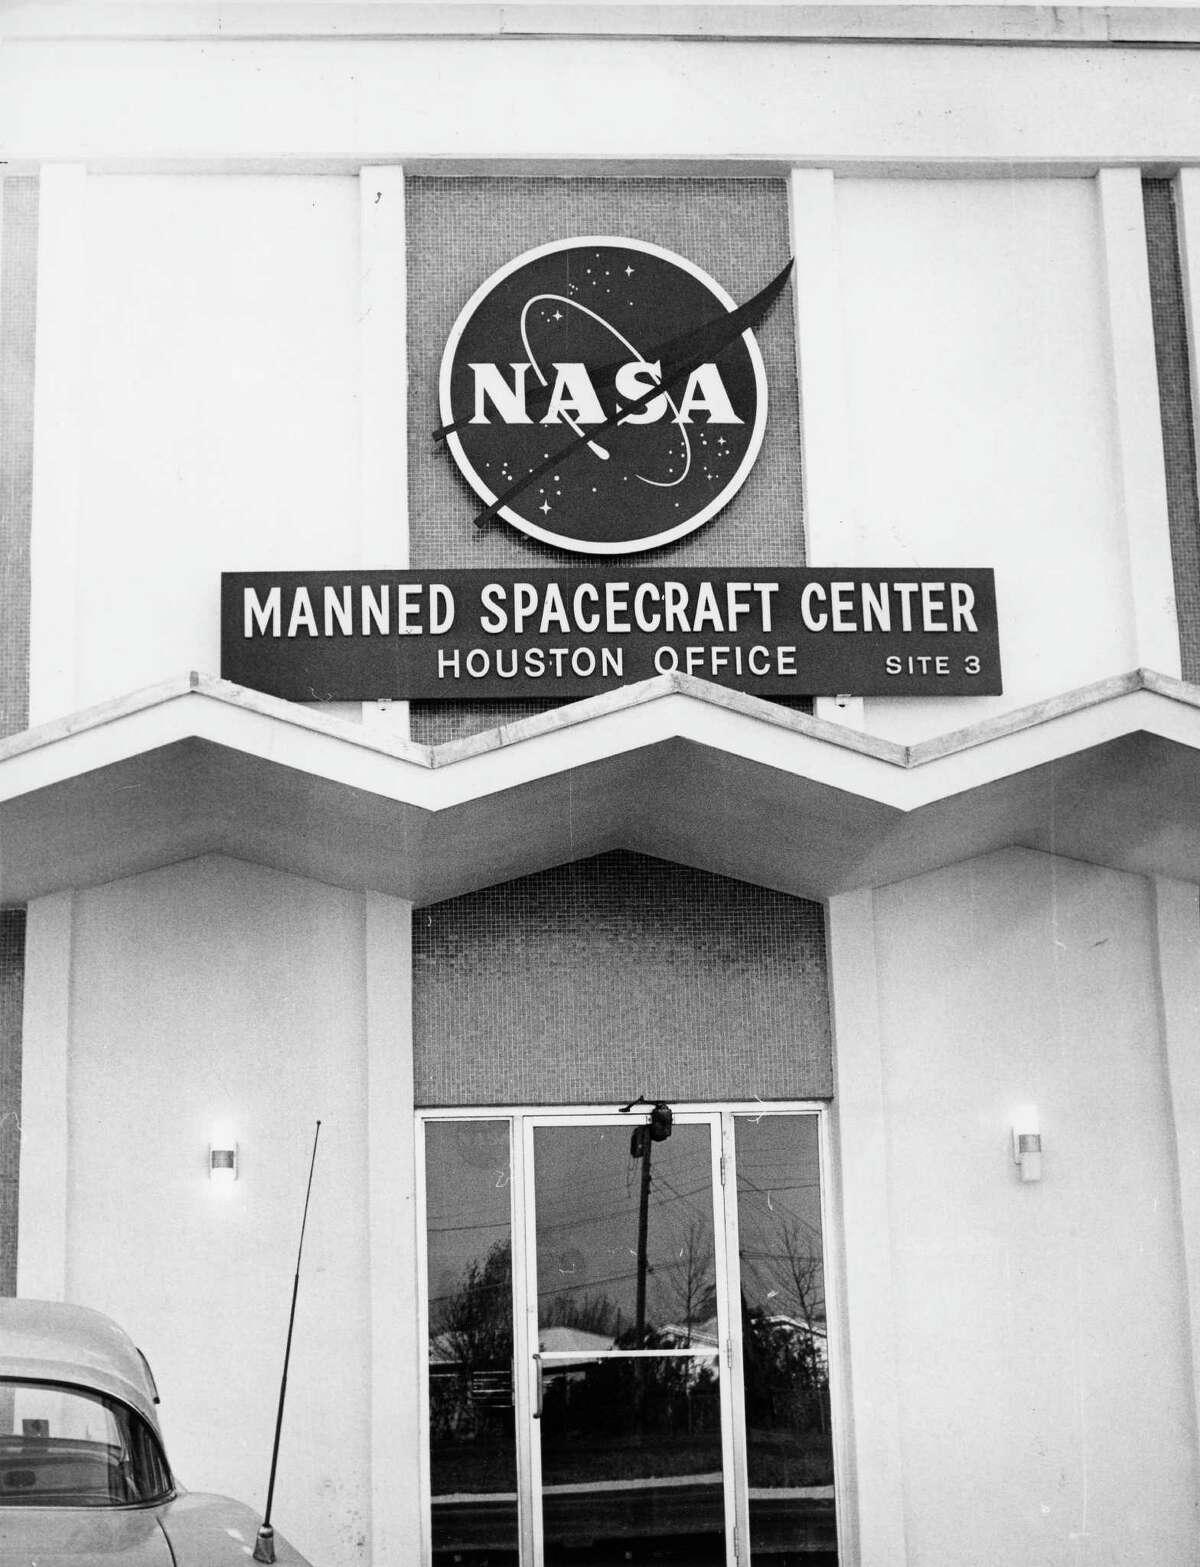 In 1962, part of the Space Center was in an interim building at Telephone Road and Westover. The Rich Building was one of several that was leased in the Houston area until NASA moved to its permanent home near Clear Lake.